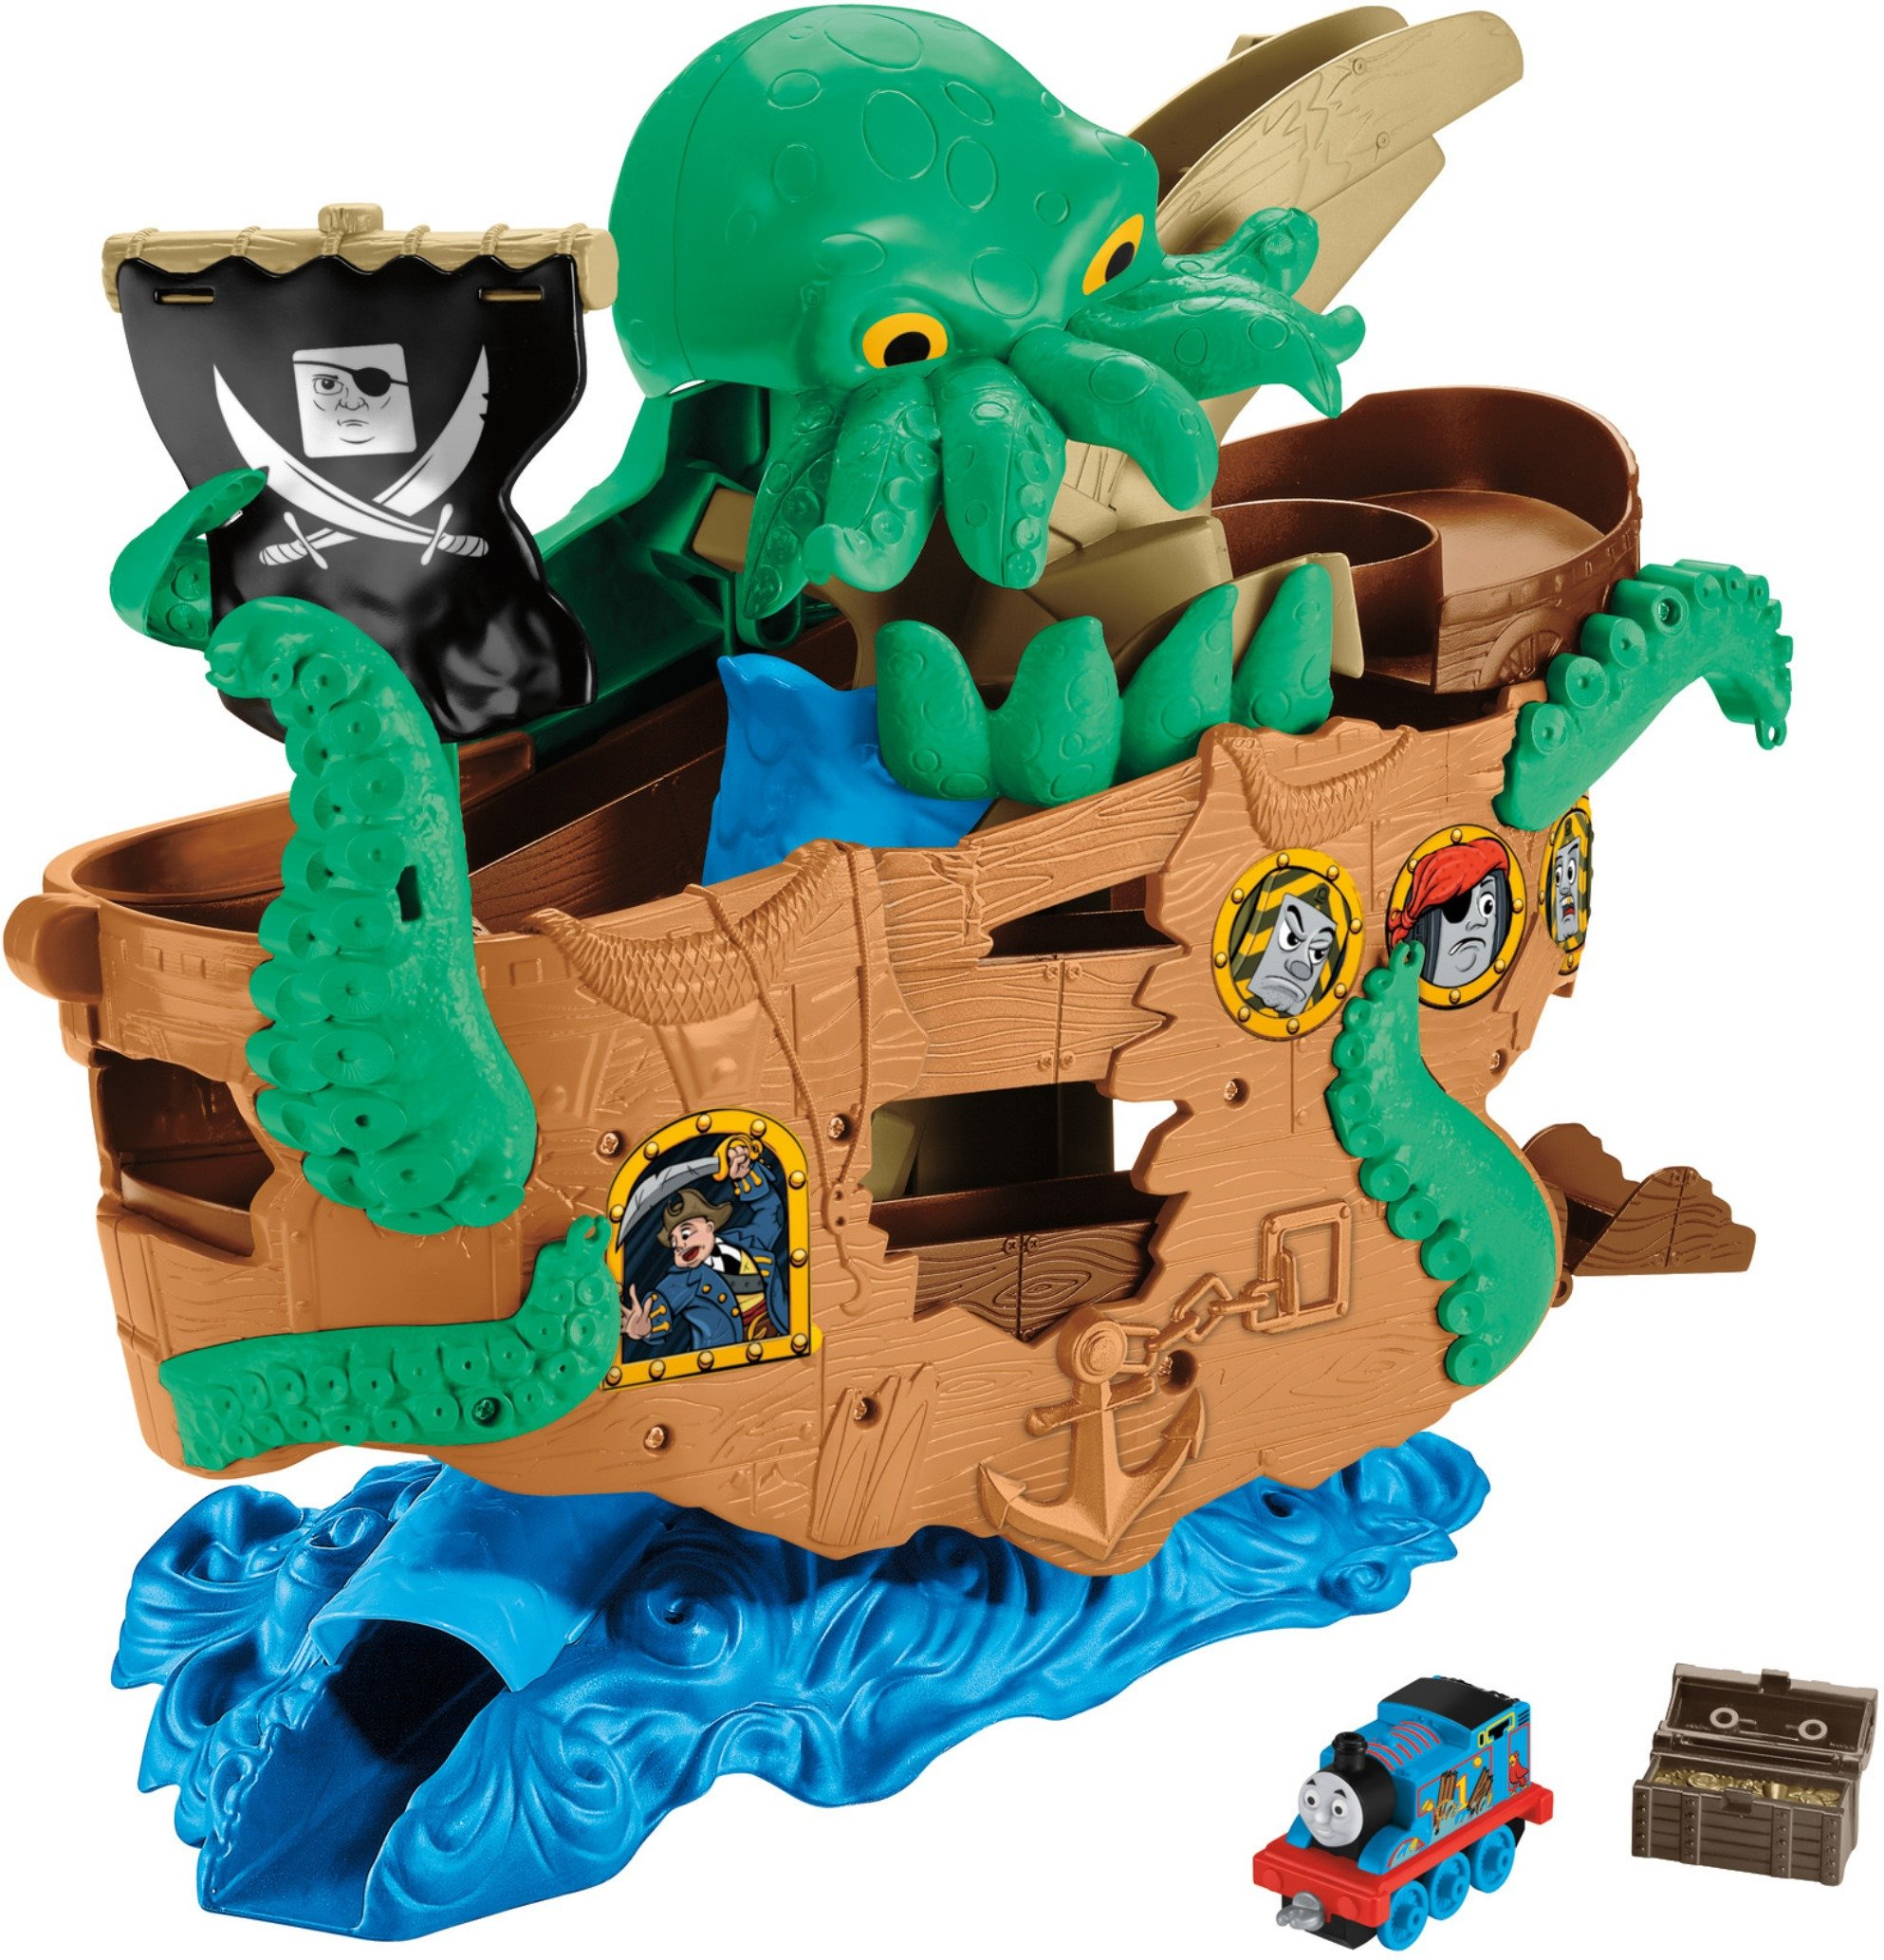 Thomas & Friends Fisher-Price Adventures, Sea Monster Pirate Set